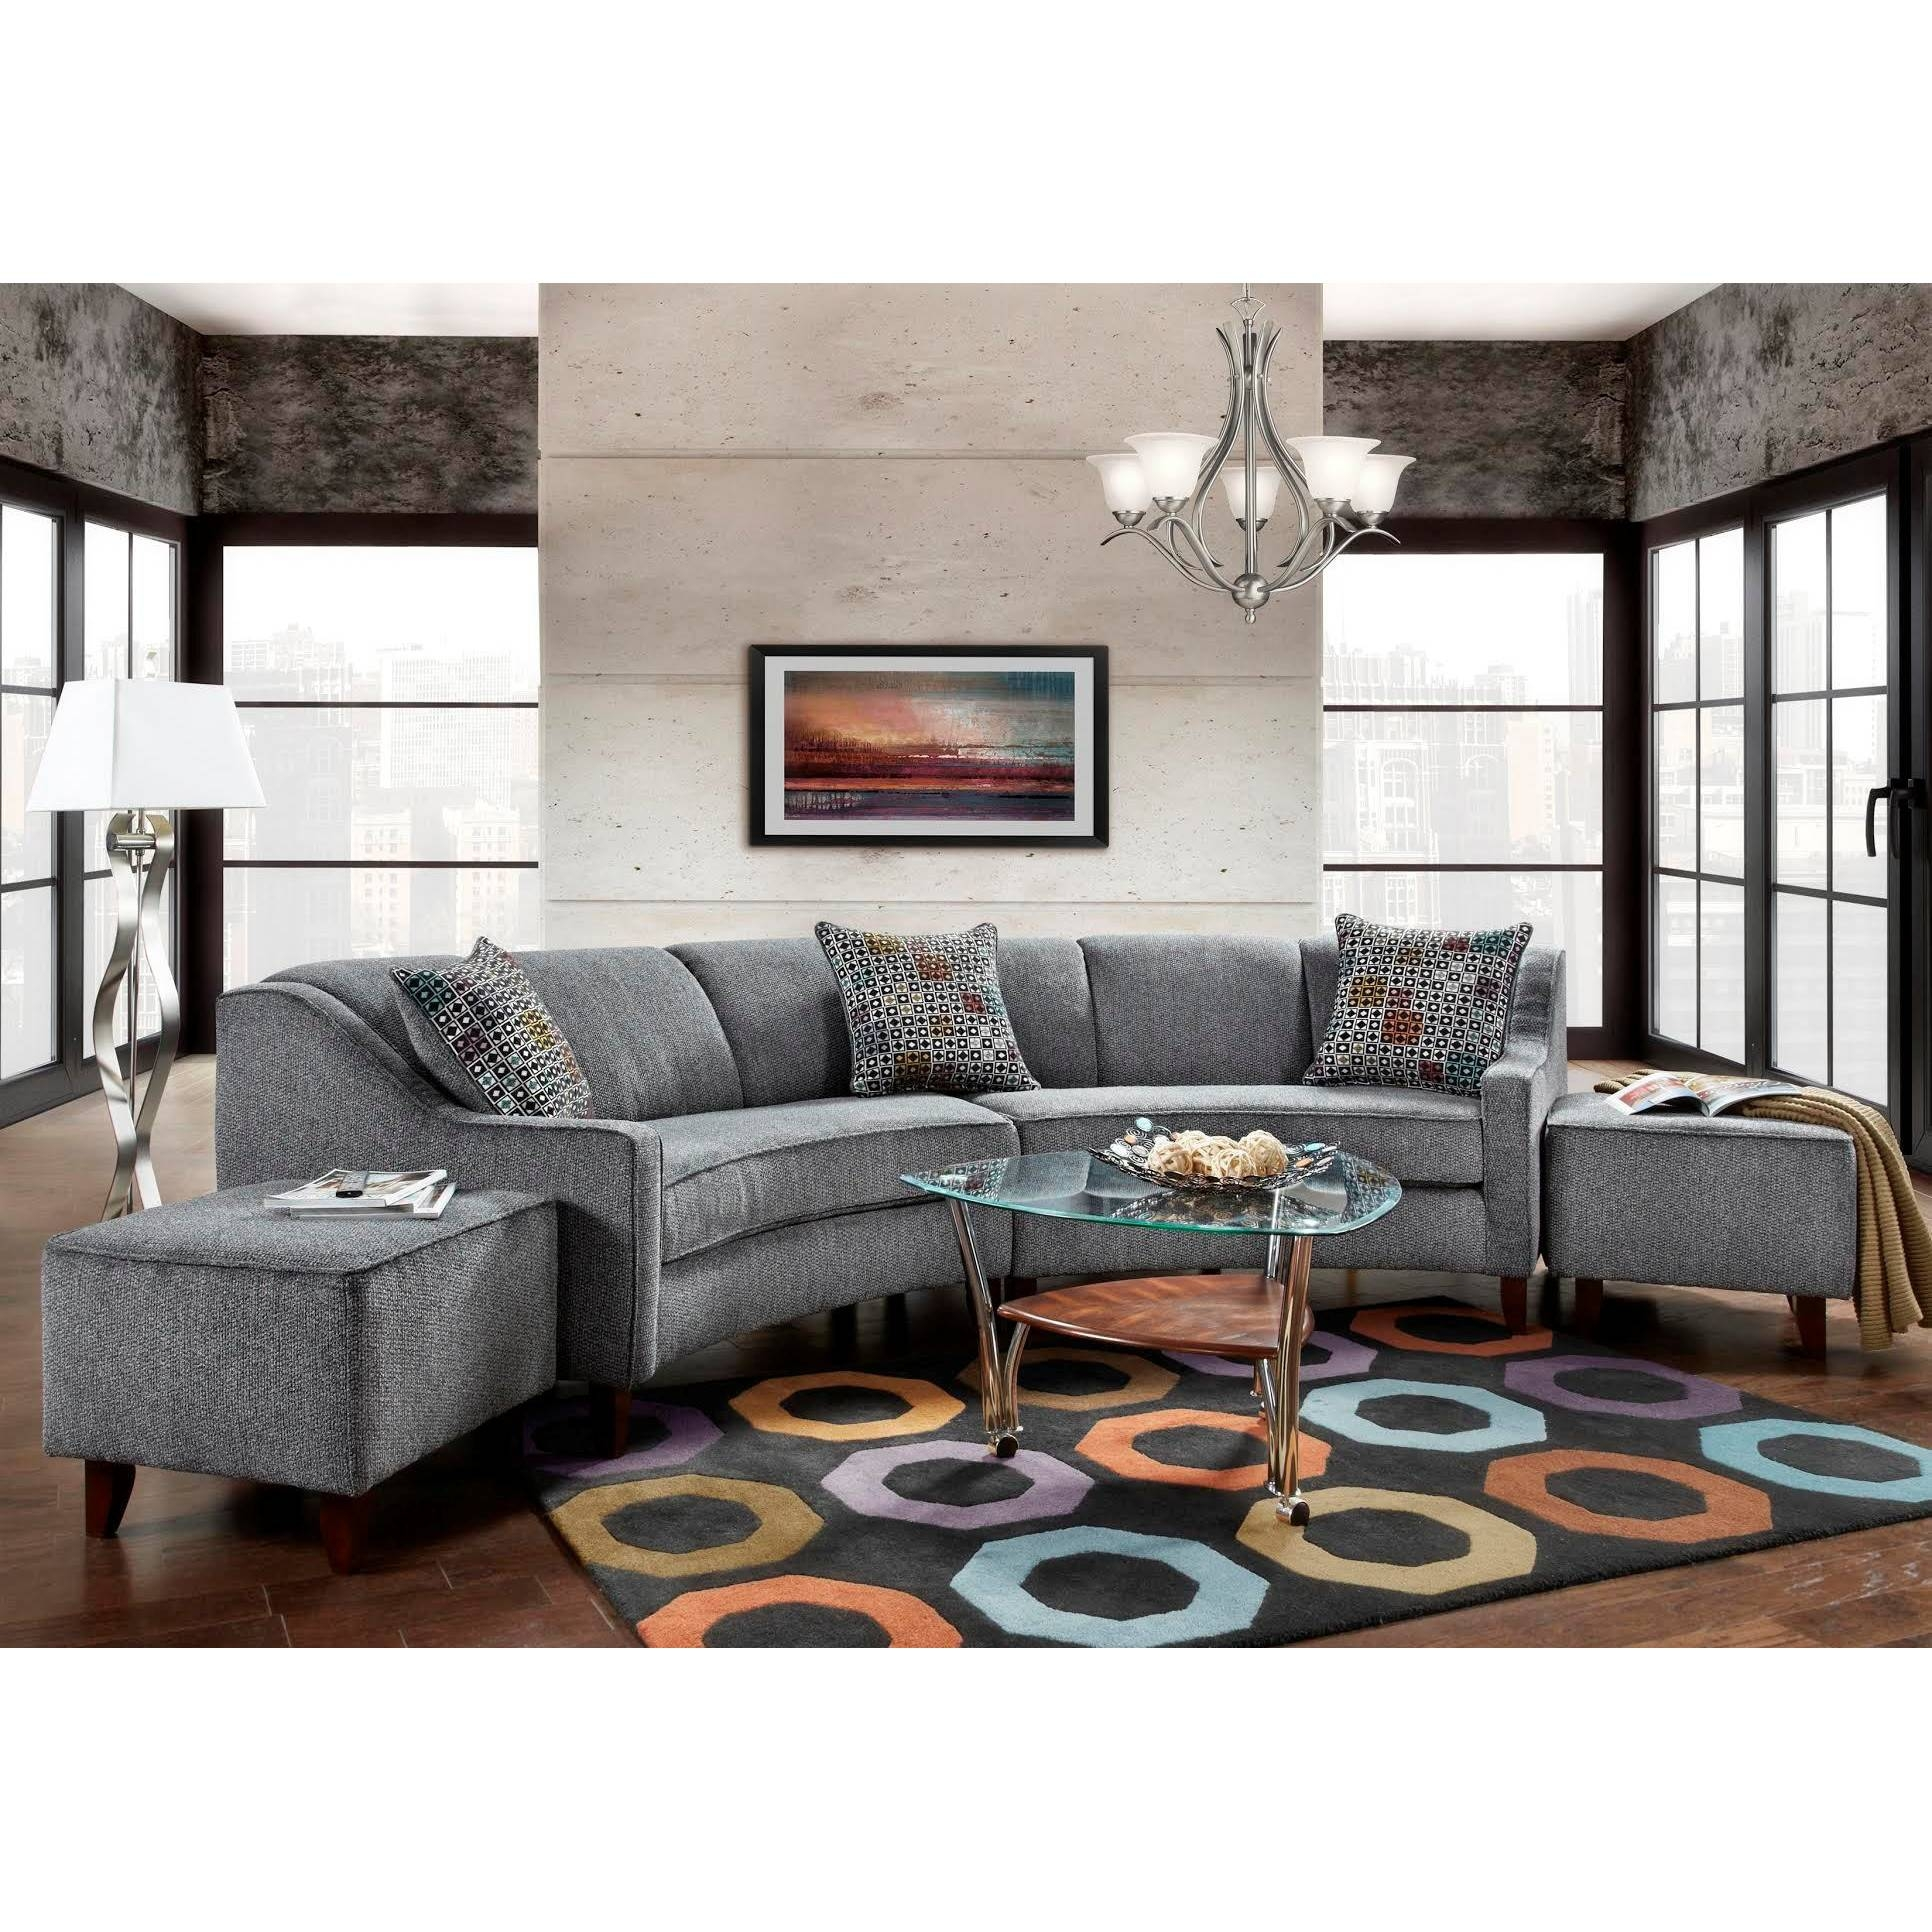 Sofas Center : Seat Sectional Sofa Phenomenal Image Ideas Best On pertaining to 7 Seat Sectional Sofa (Image 24 of 30)